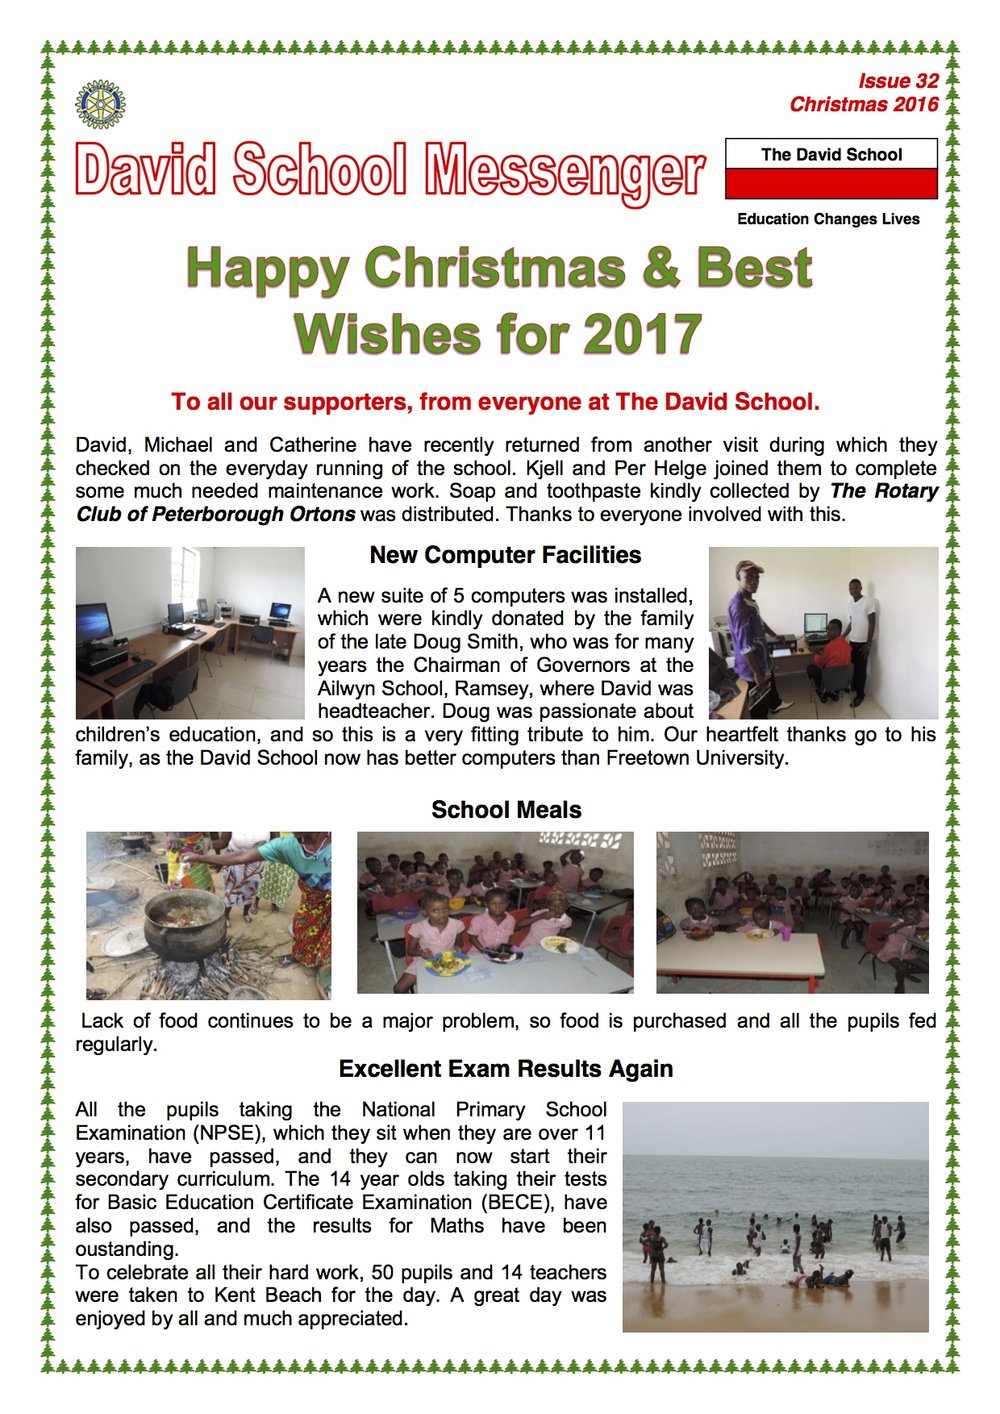 The David School Messenger 32 Christmas 2016p01.jpg